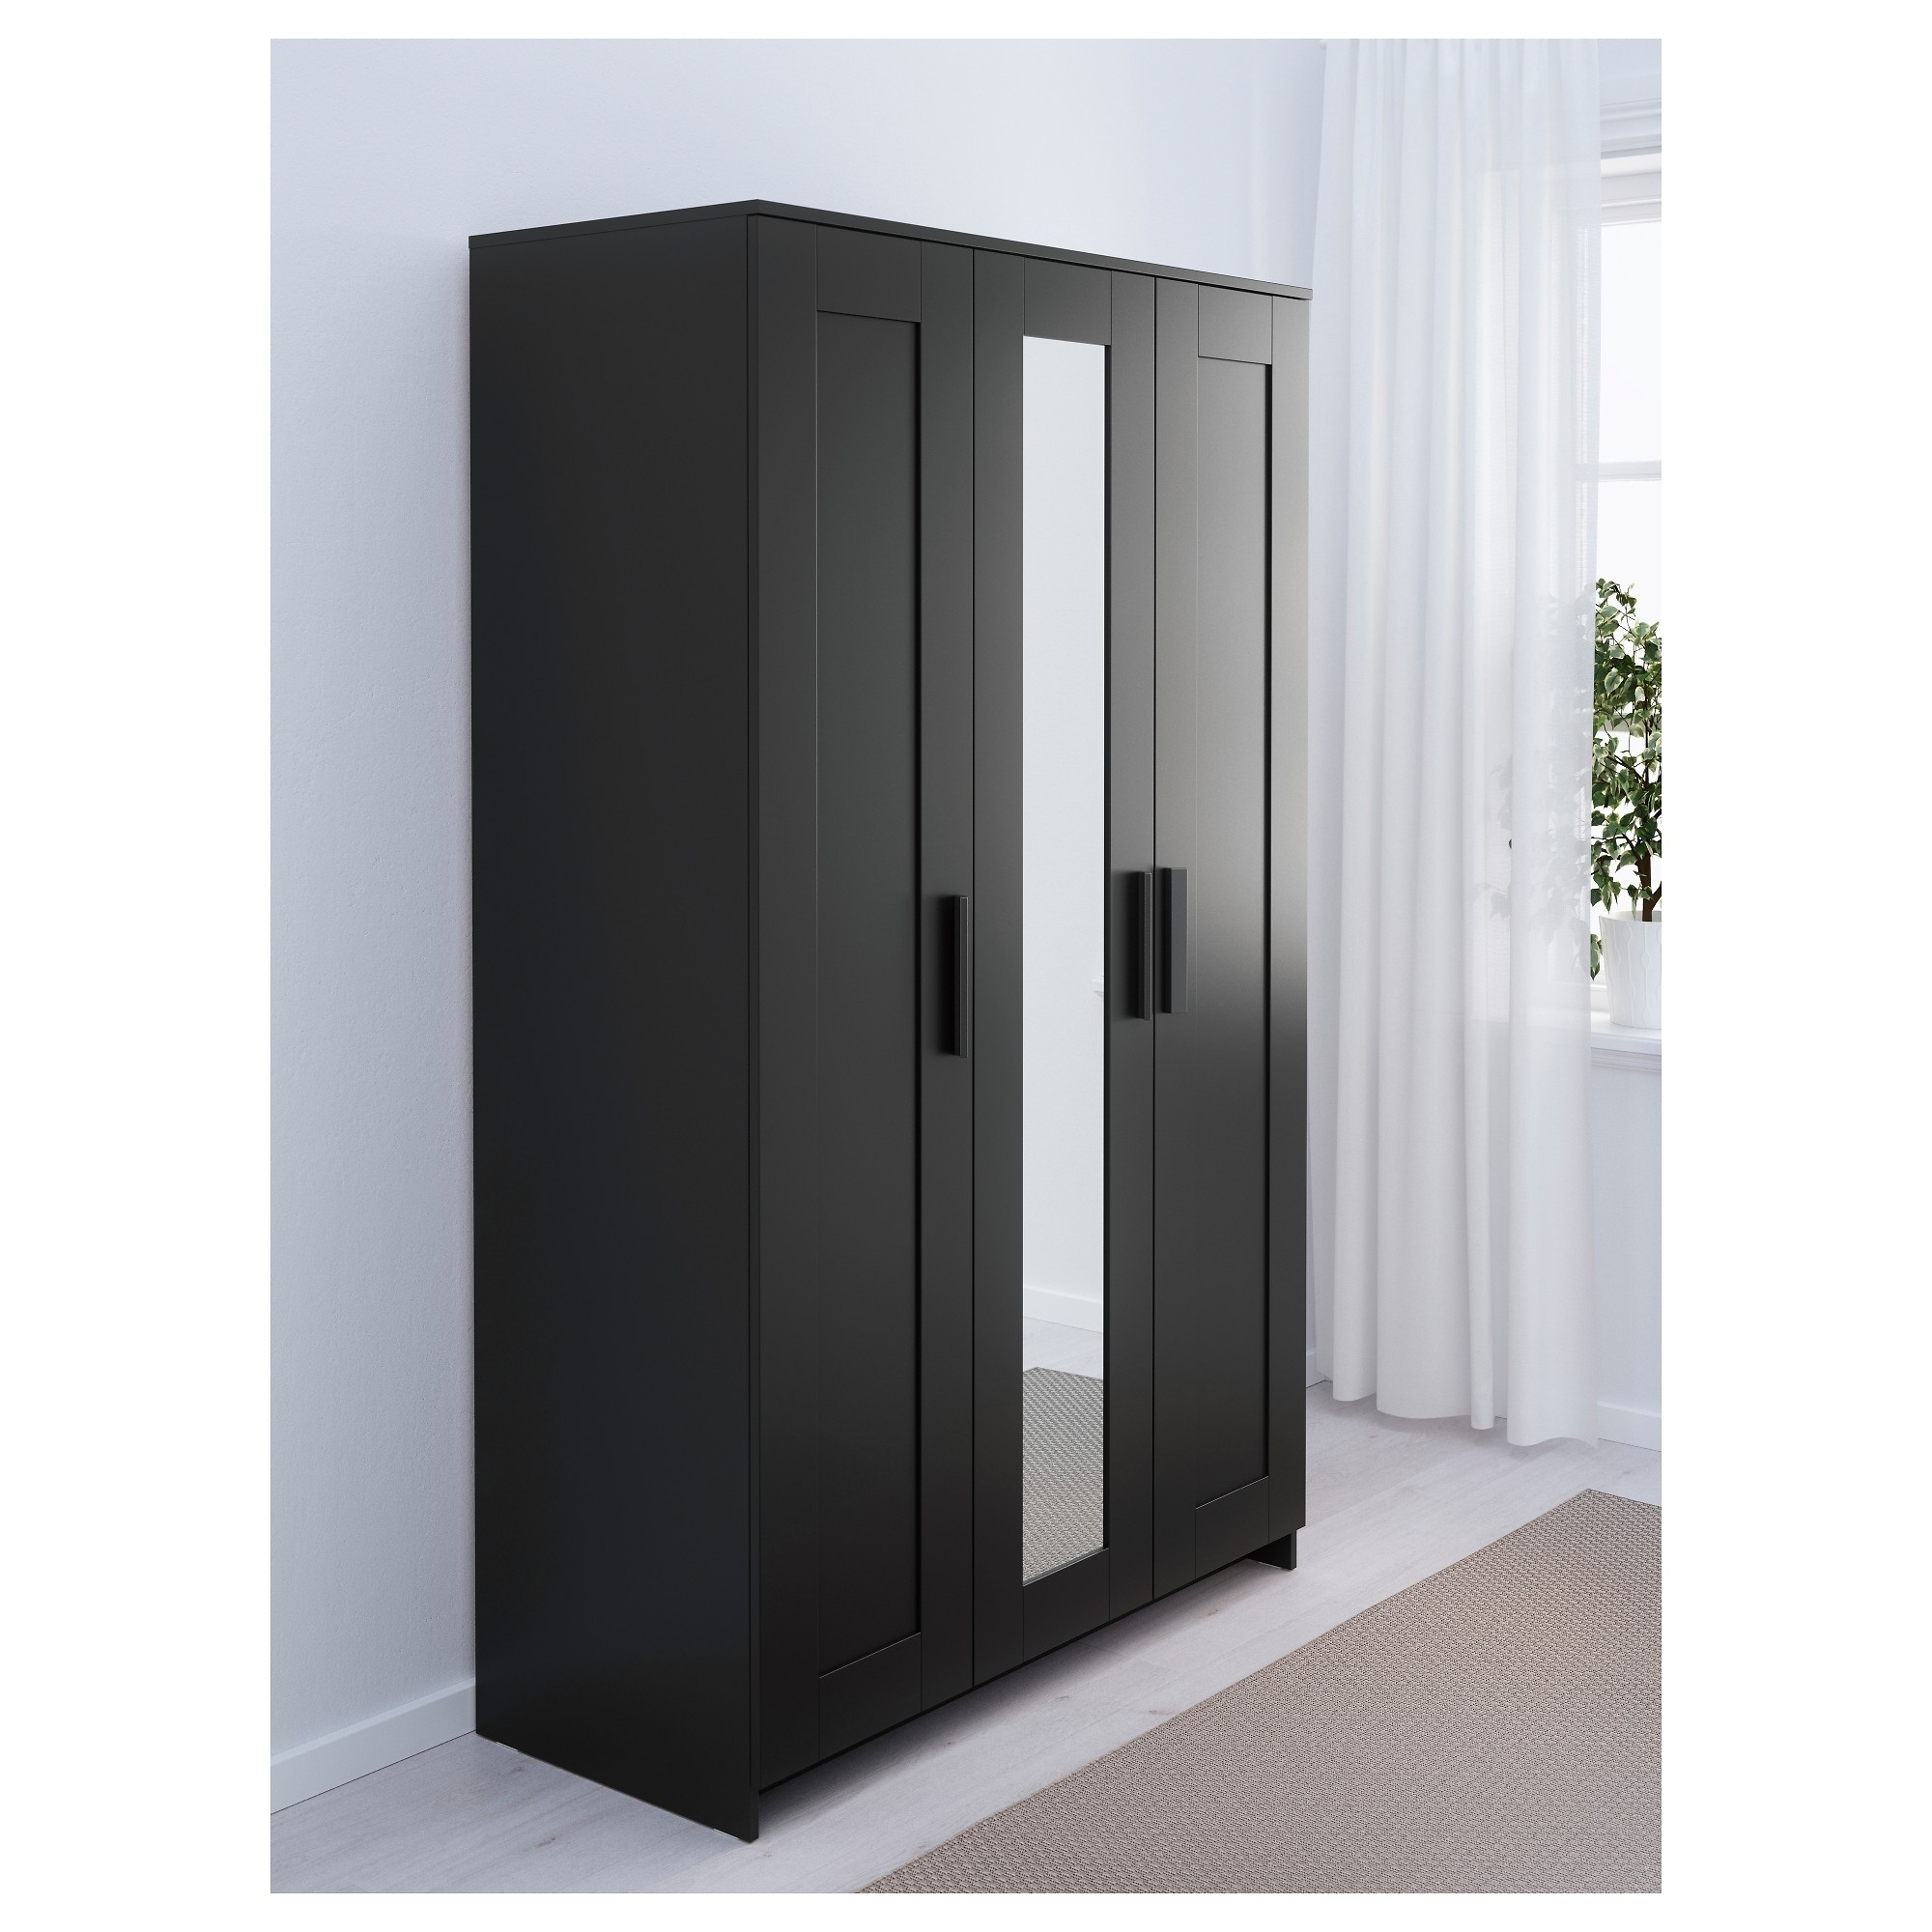 Black Single Door Wardrobes Intended For 2018 Fresh Black Single Door Wardrobe – Badotcom (View 6 of 15)